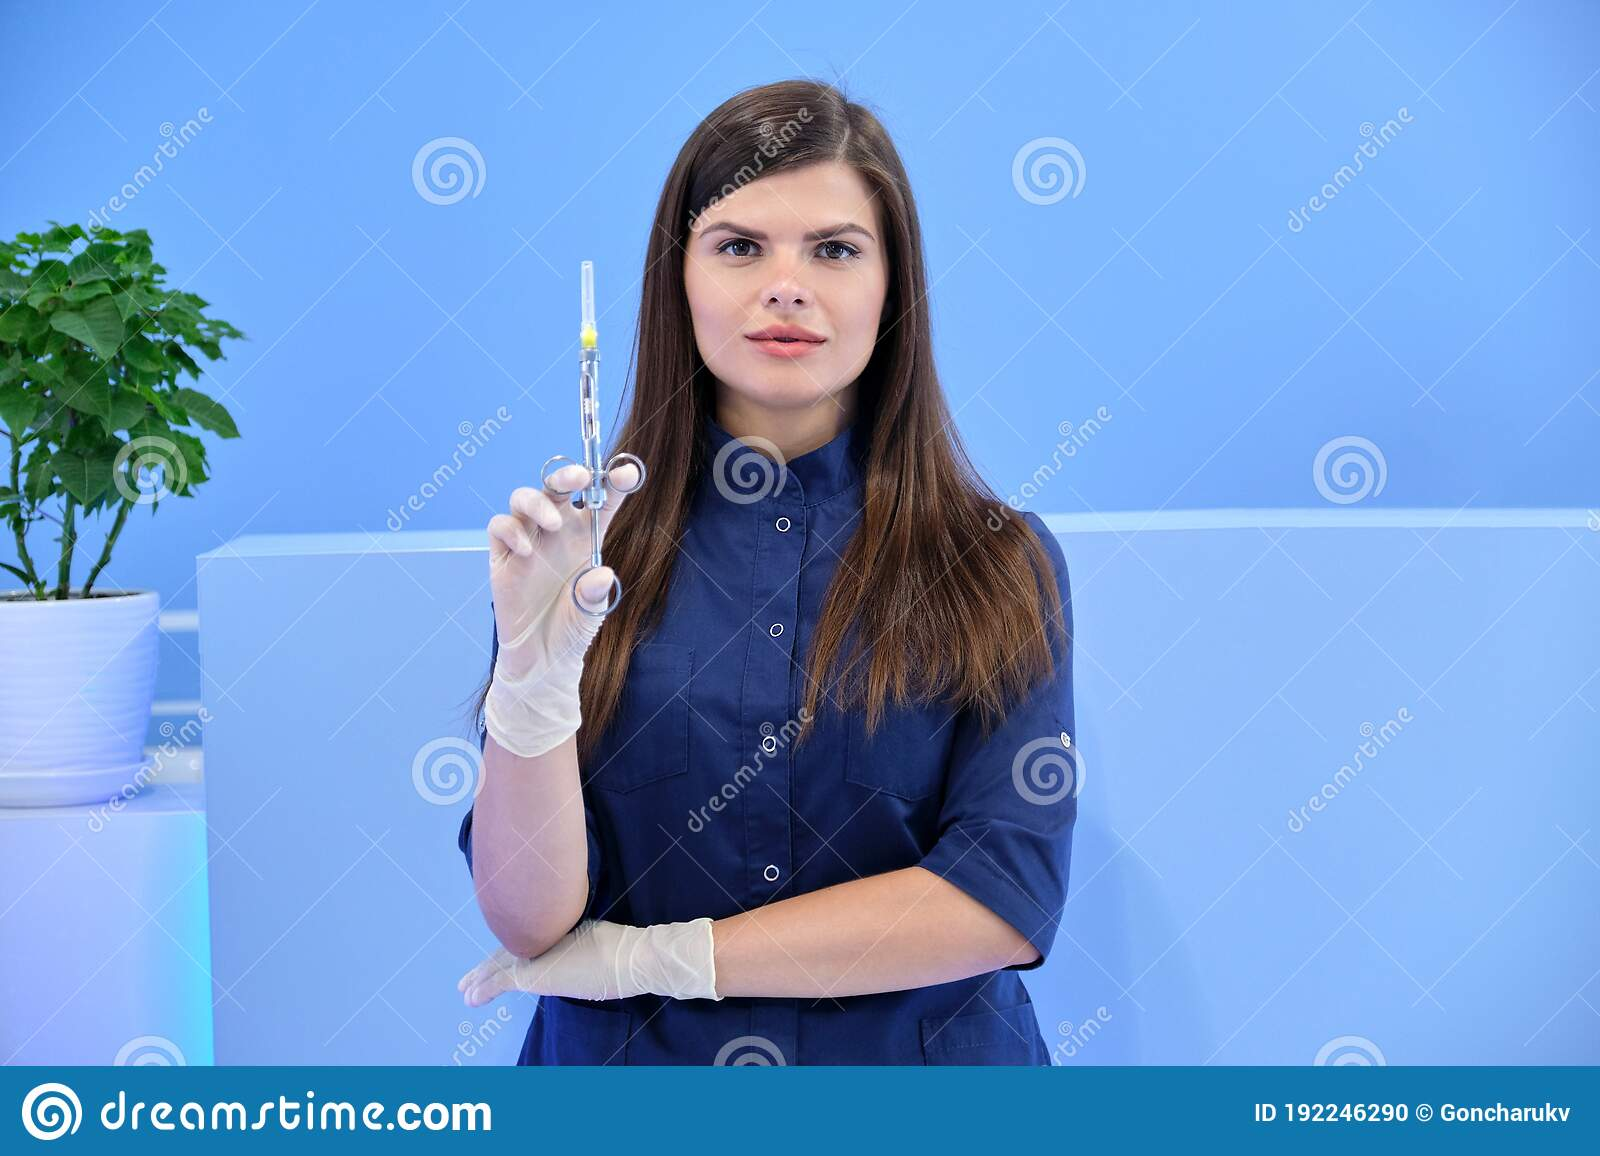 Hand hold disposable syringe with toxin — Stock Photo